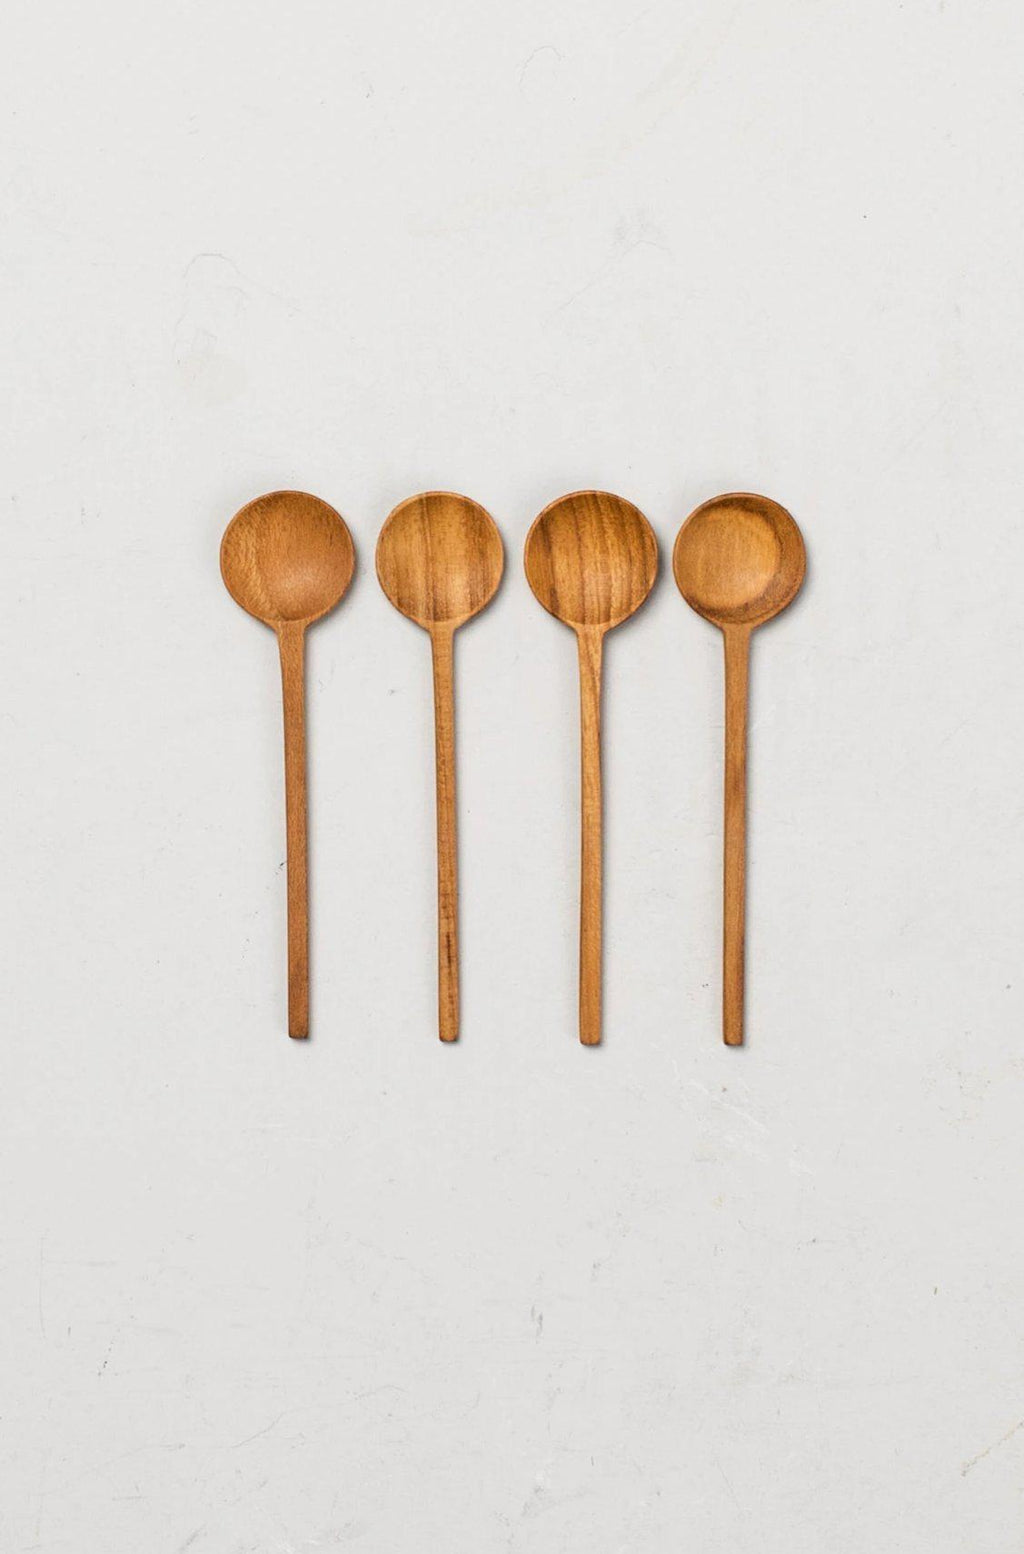 Be Home Teak Thin Mini Spoons, Set of 4